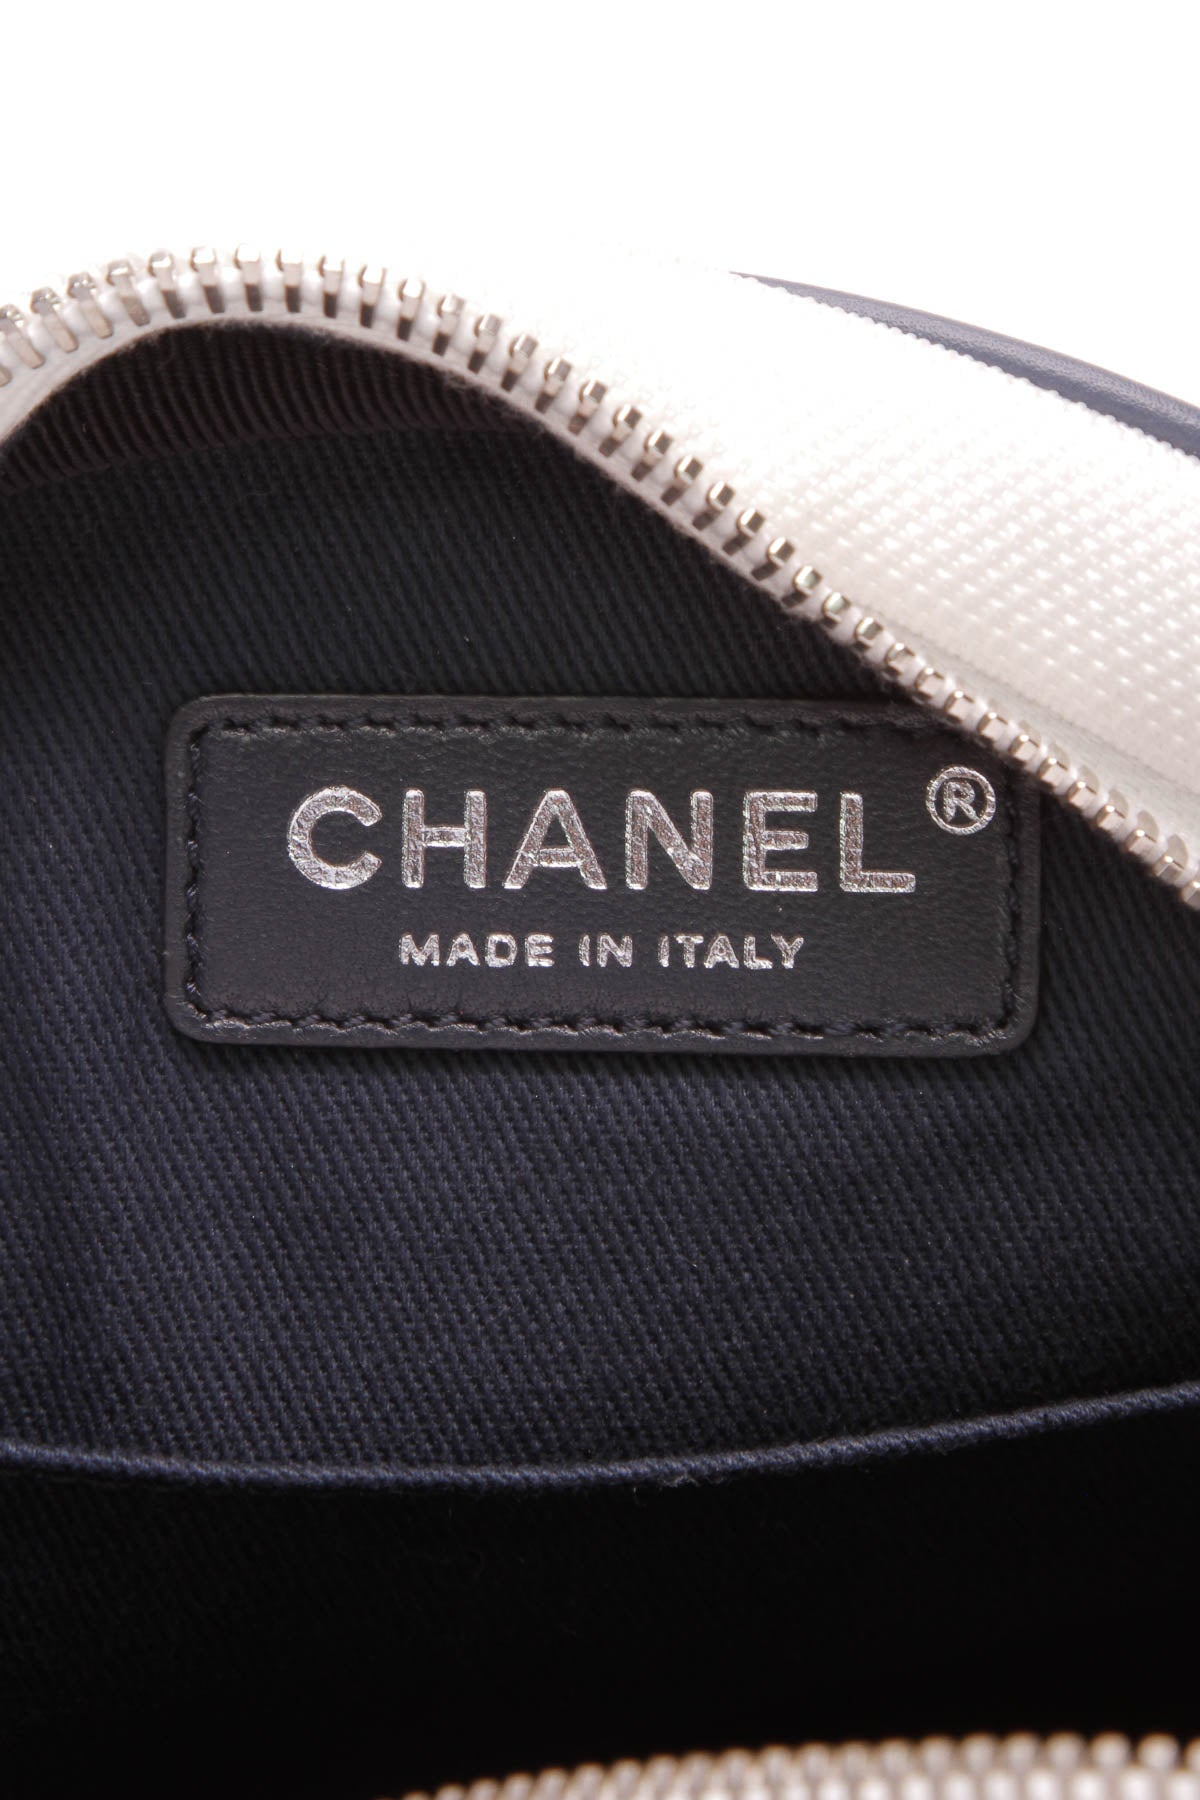 3f0aa8d2e0cfcc Chanel Round Airlines Messenger Bag Toile Rubber Black Blue White